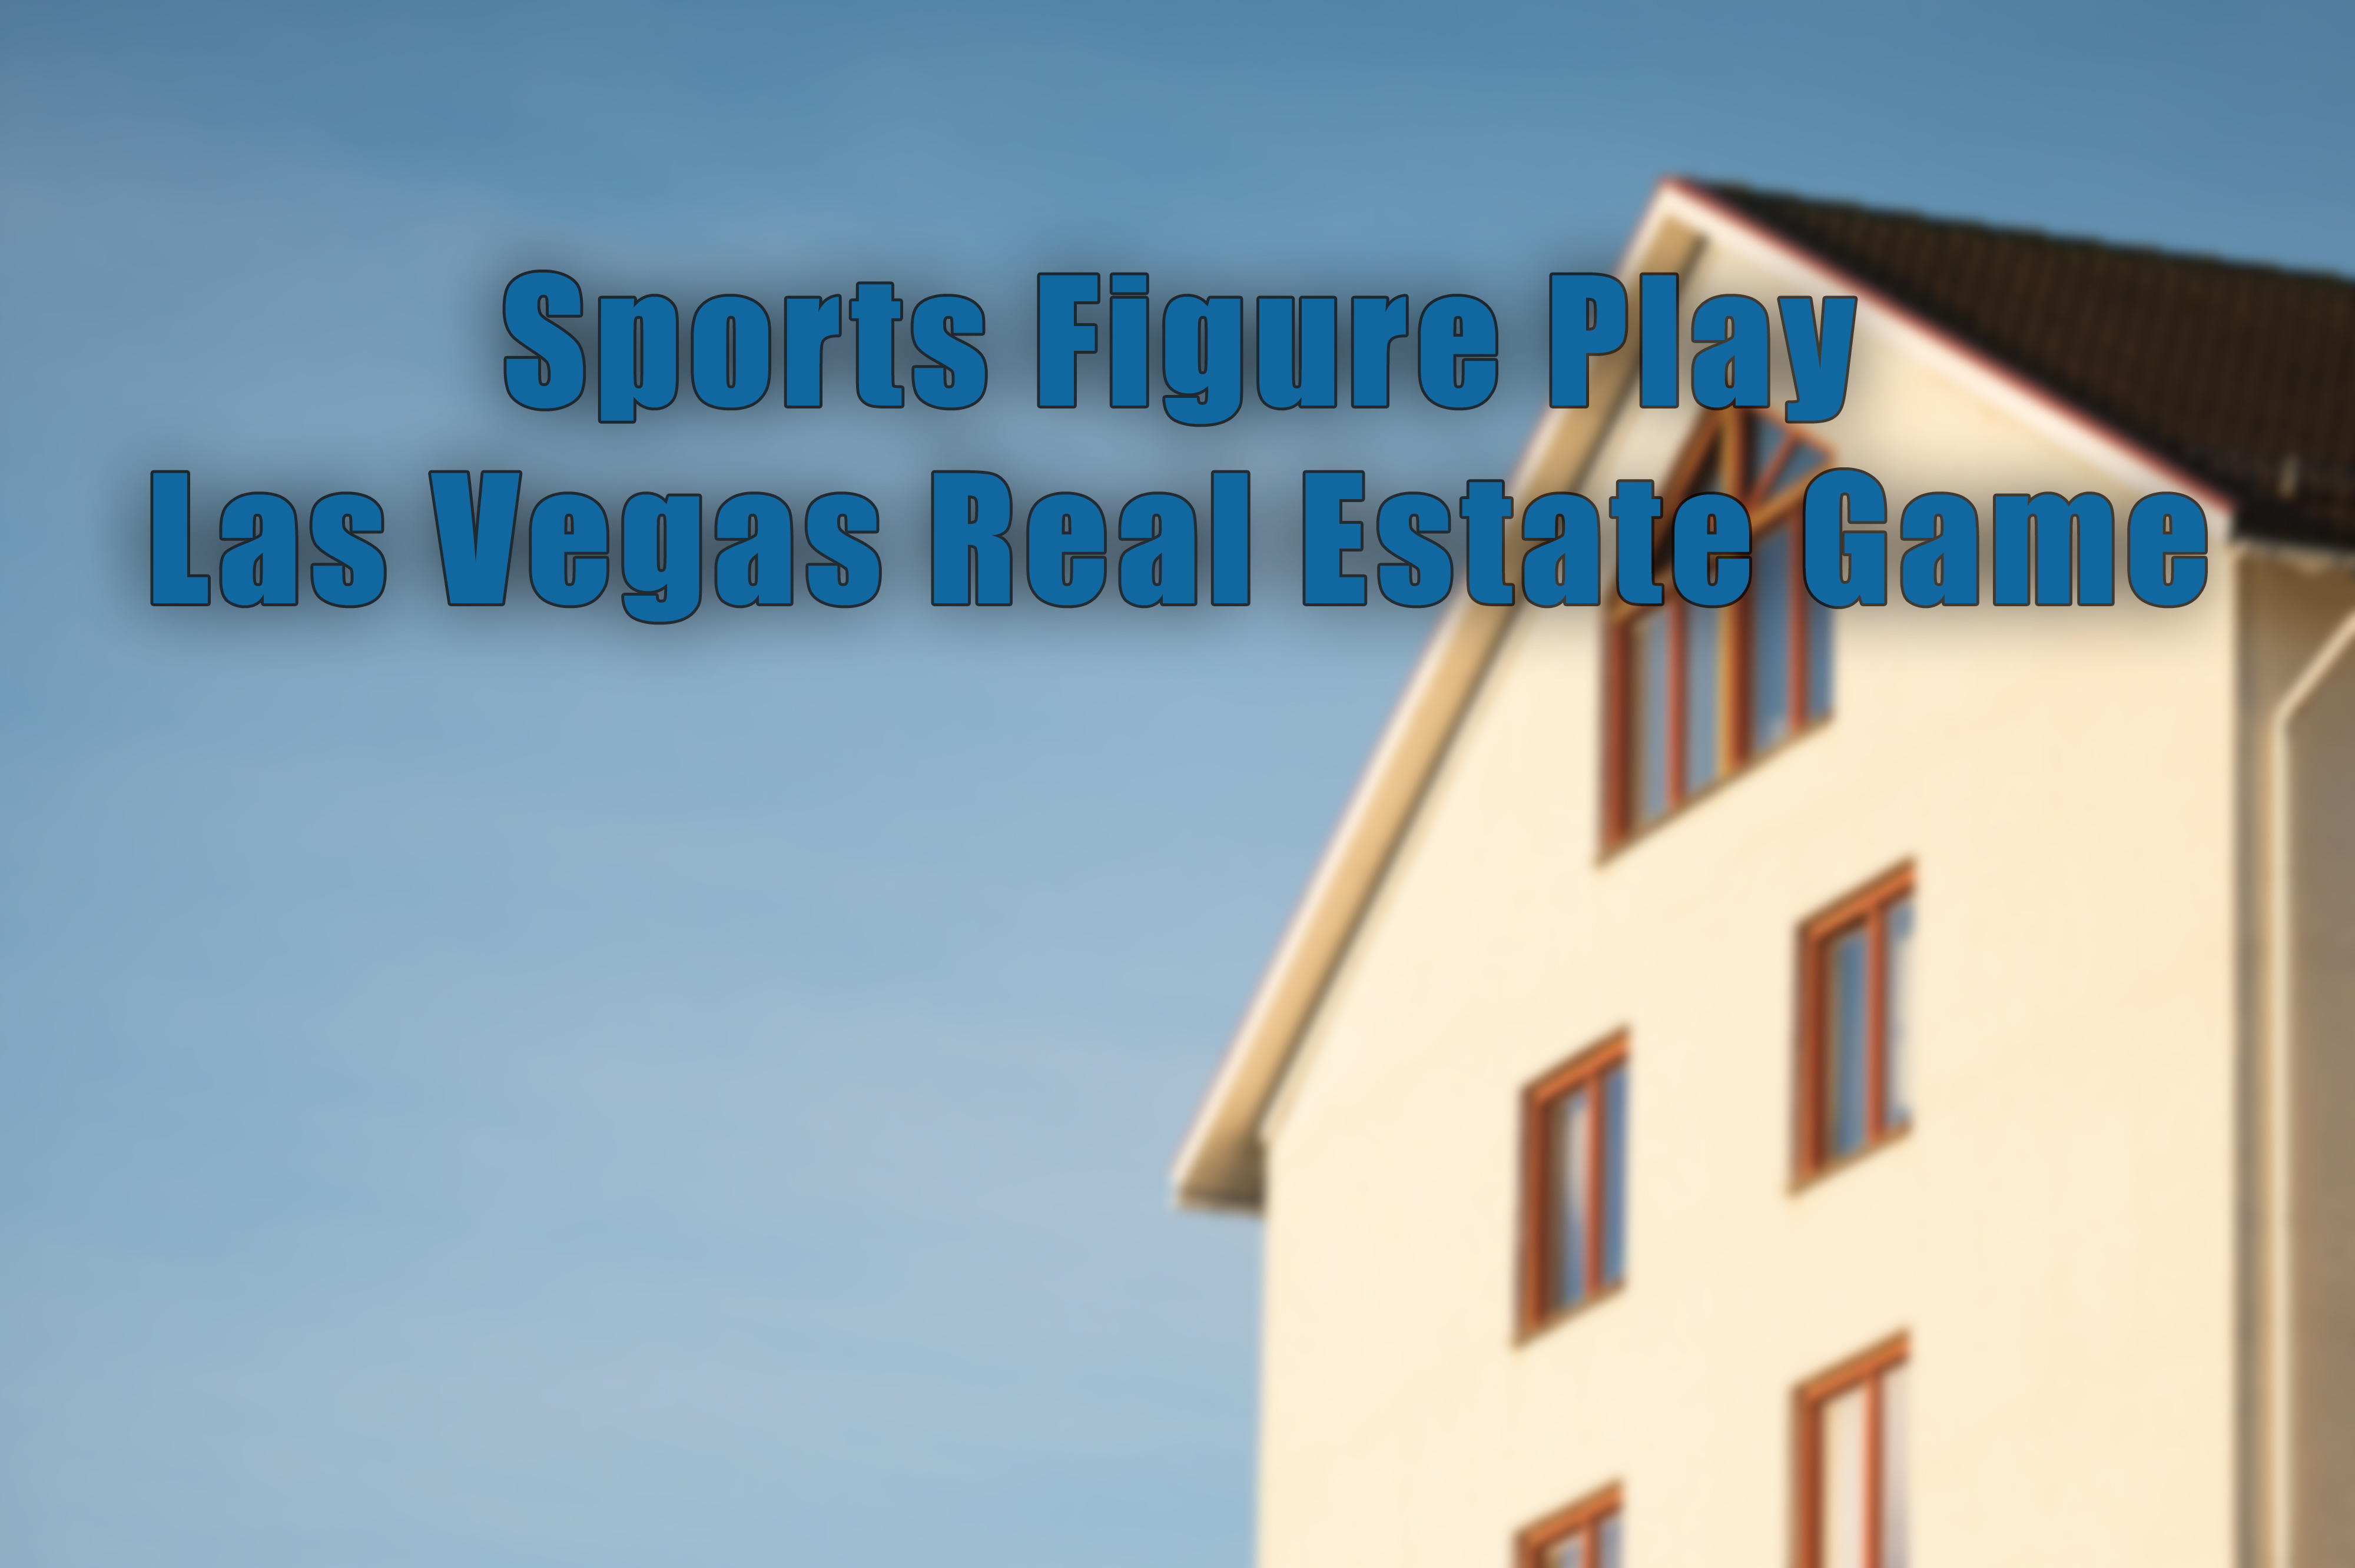 Sports Figure Play Real Estate.jpg